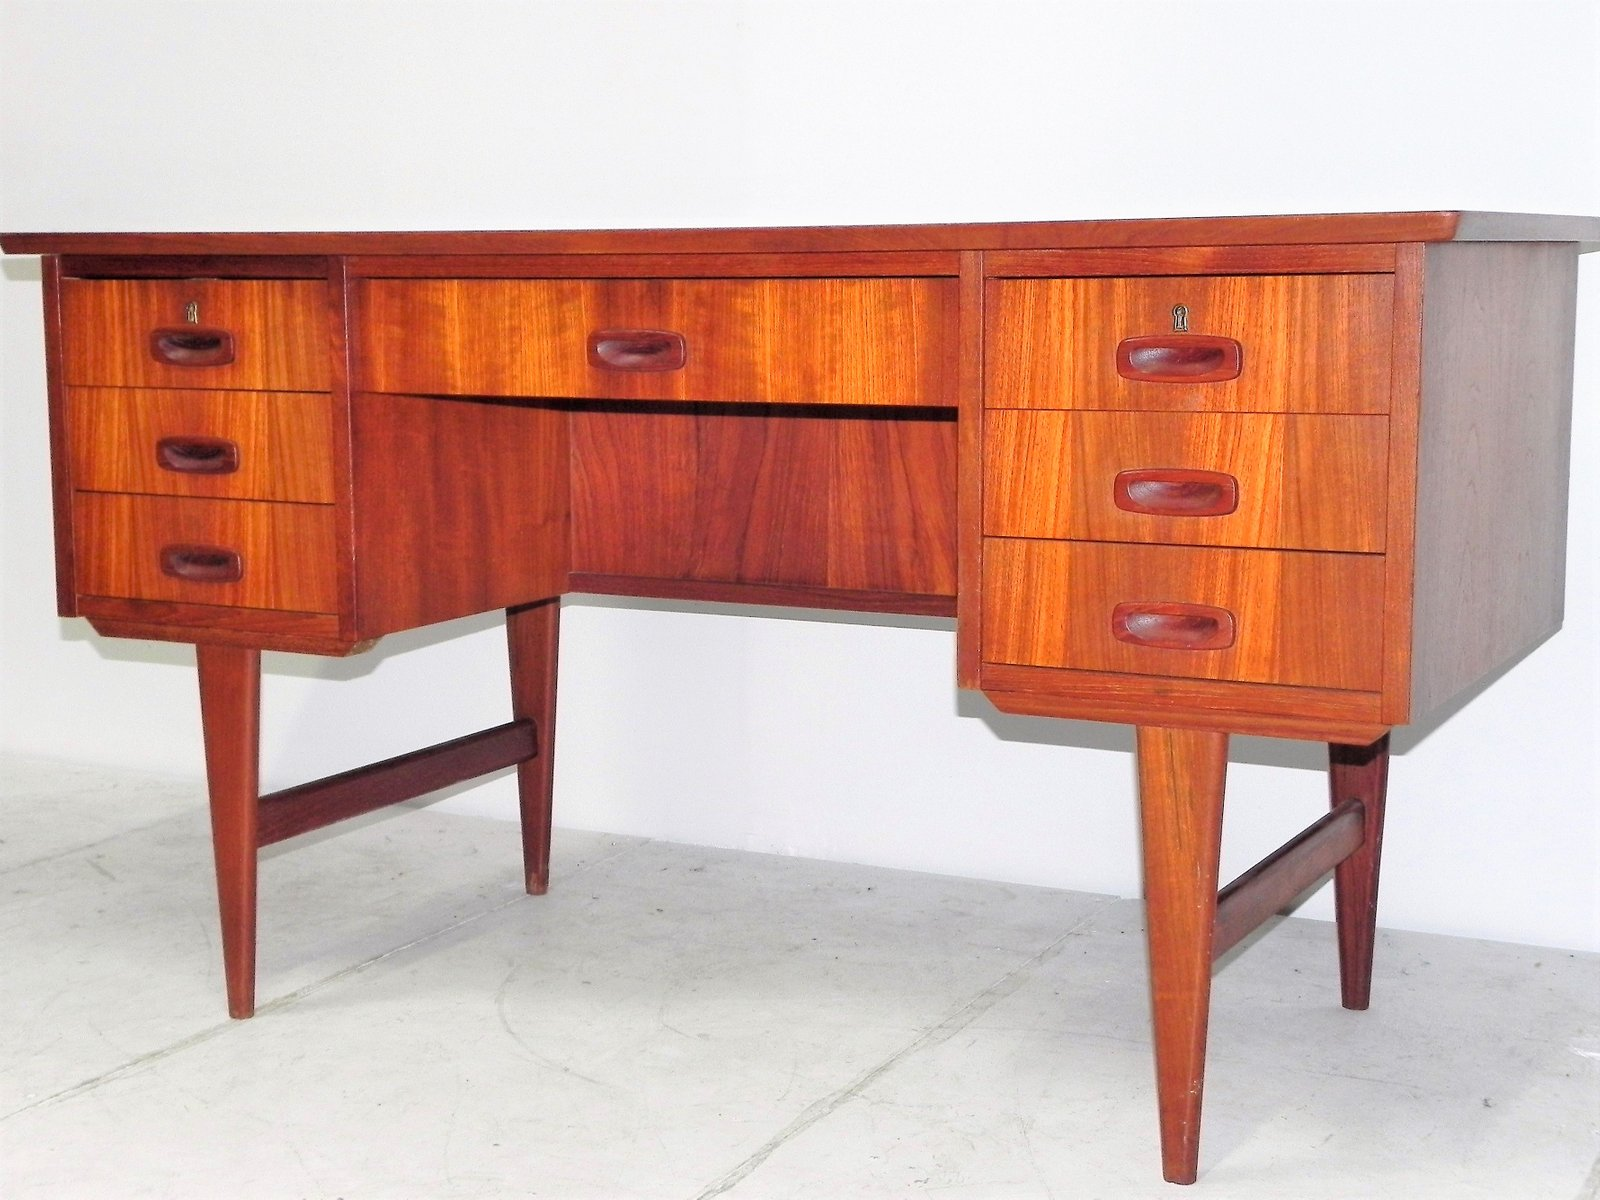 Scandinavian Desk vintage scandinavian desk in teak with two compartments for sale